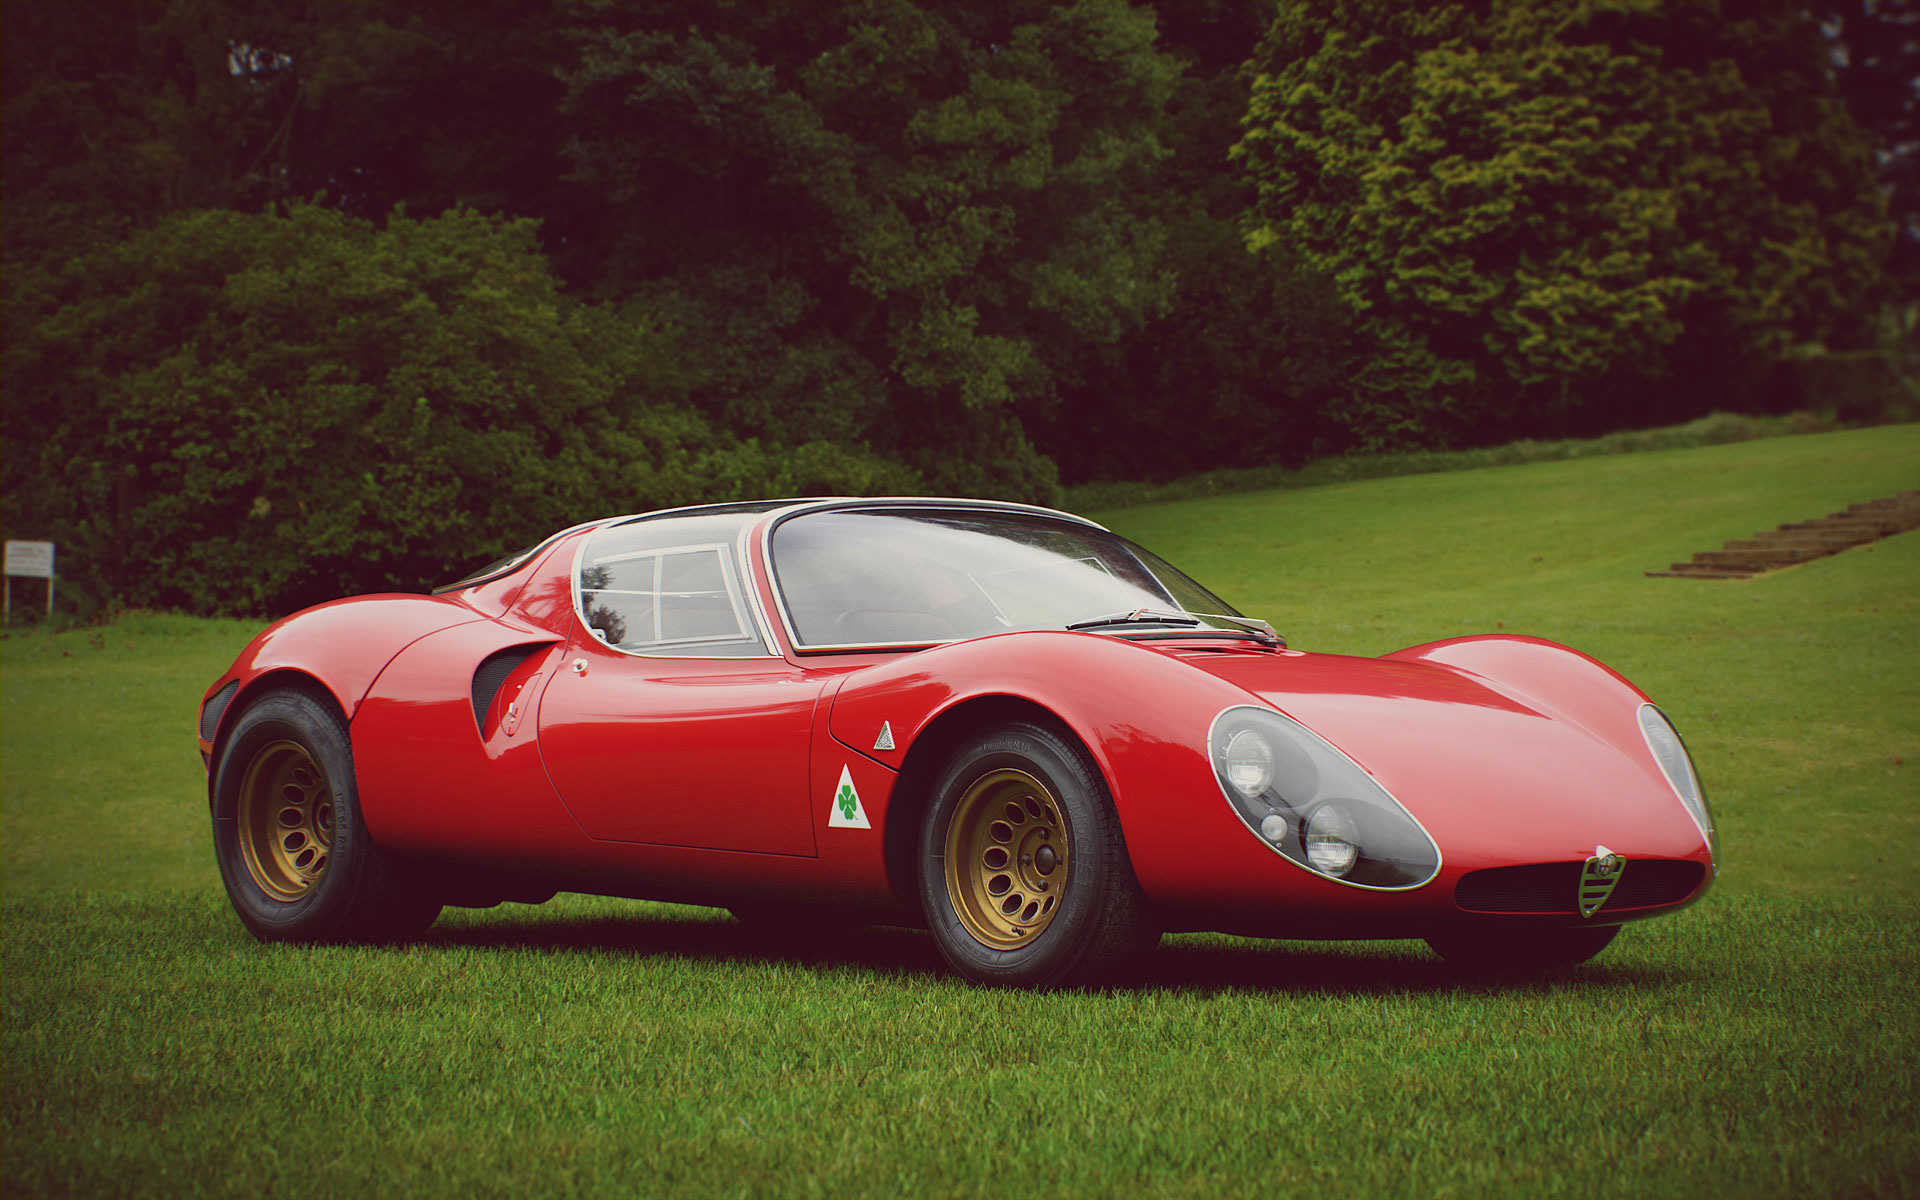 67 Alfa 33 Stradale Free Model On Behance